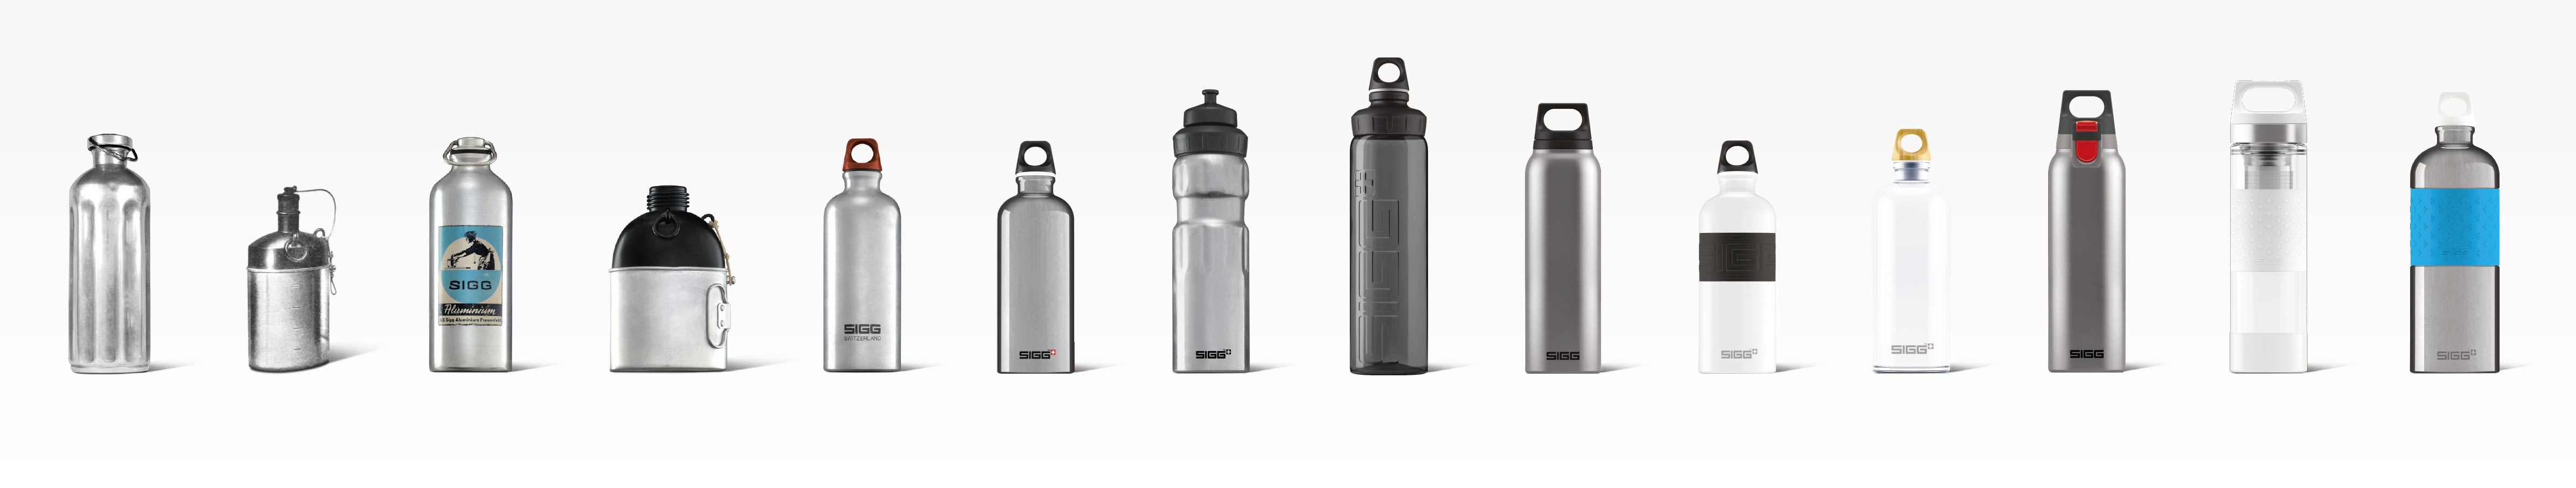 SIGG_Bottle_Evolution